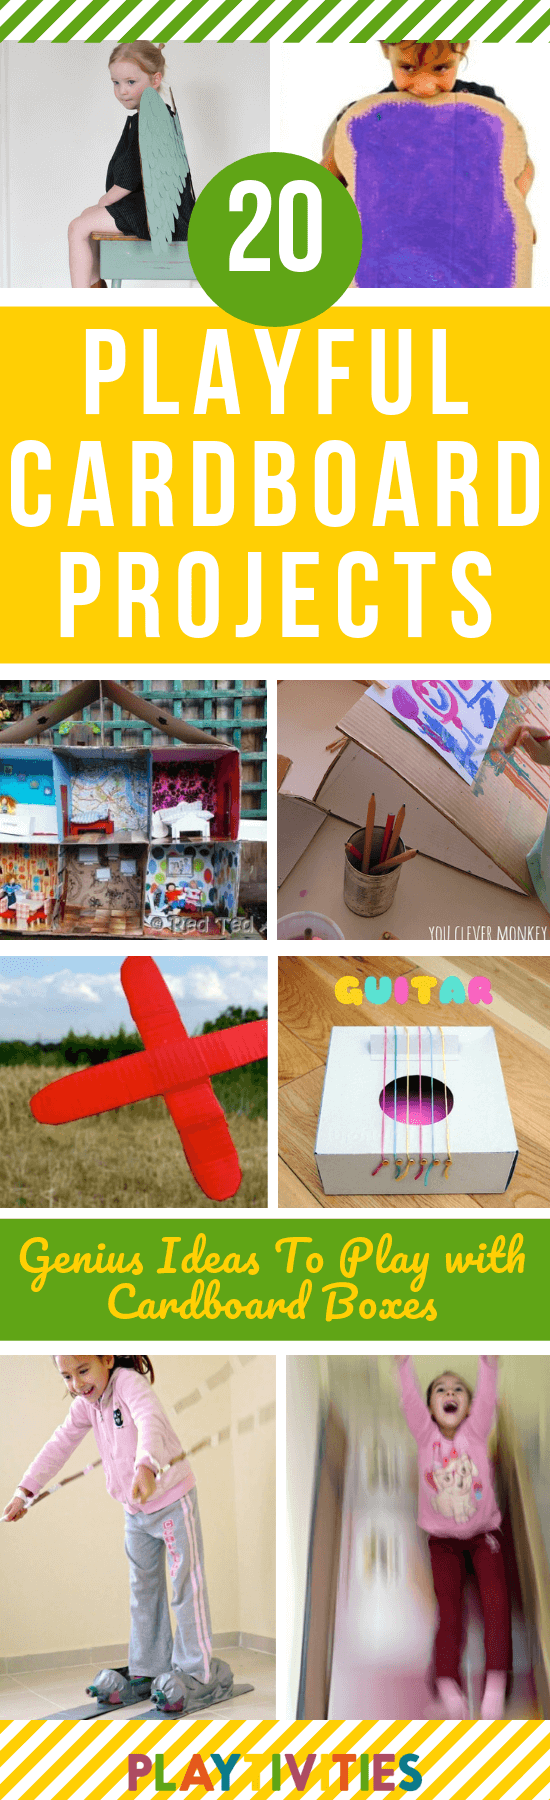 20 Genius Ideas To Play With Cardboard Boxes - PLAYTIVITIES